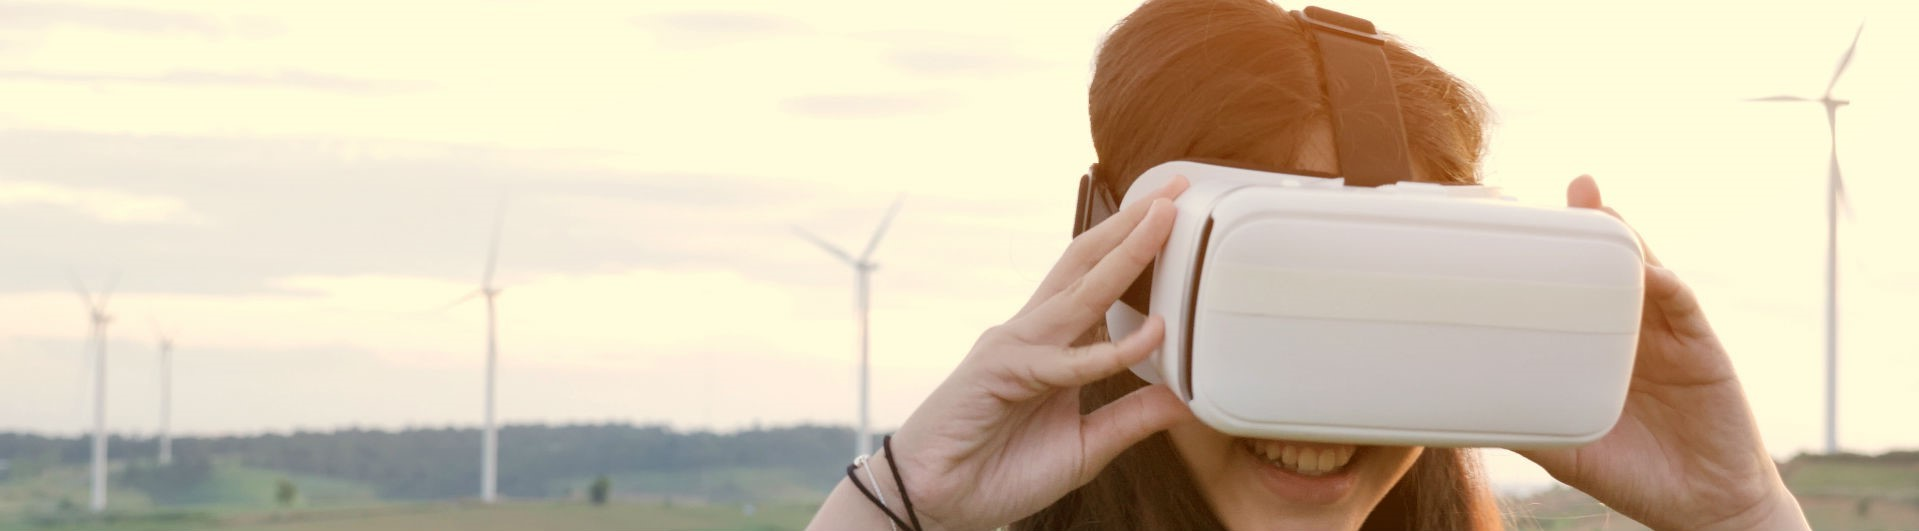 A young girl using a VR headset at a wind farm